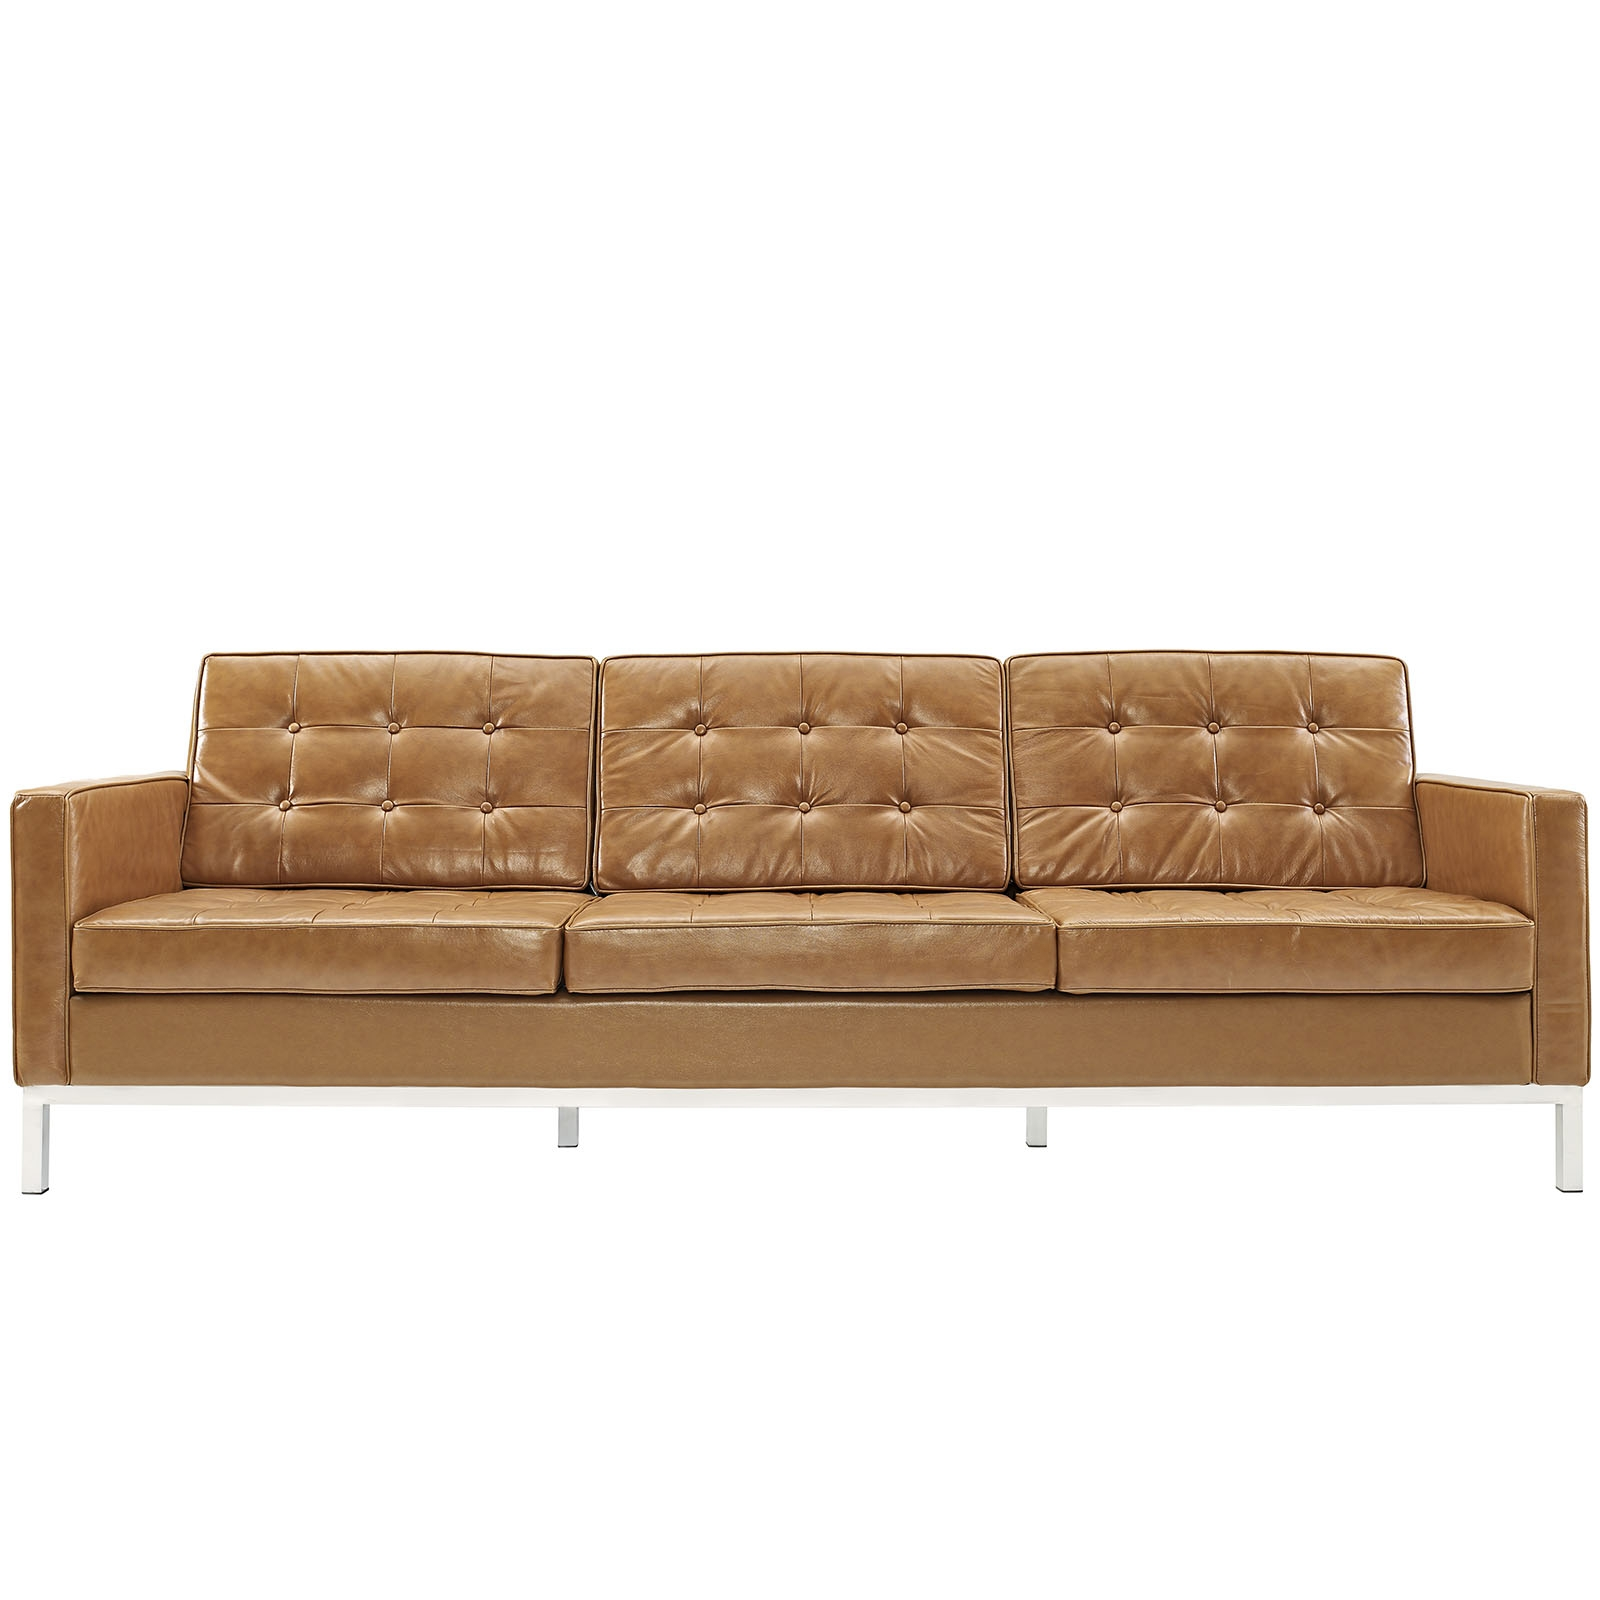 Florence Knoll Style Sofa Couch Leather For Florence Knoll Leather Sofas (View 9 of 15)